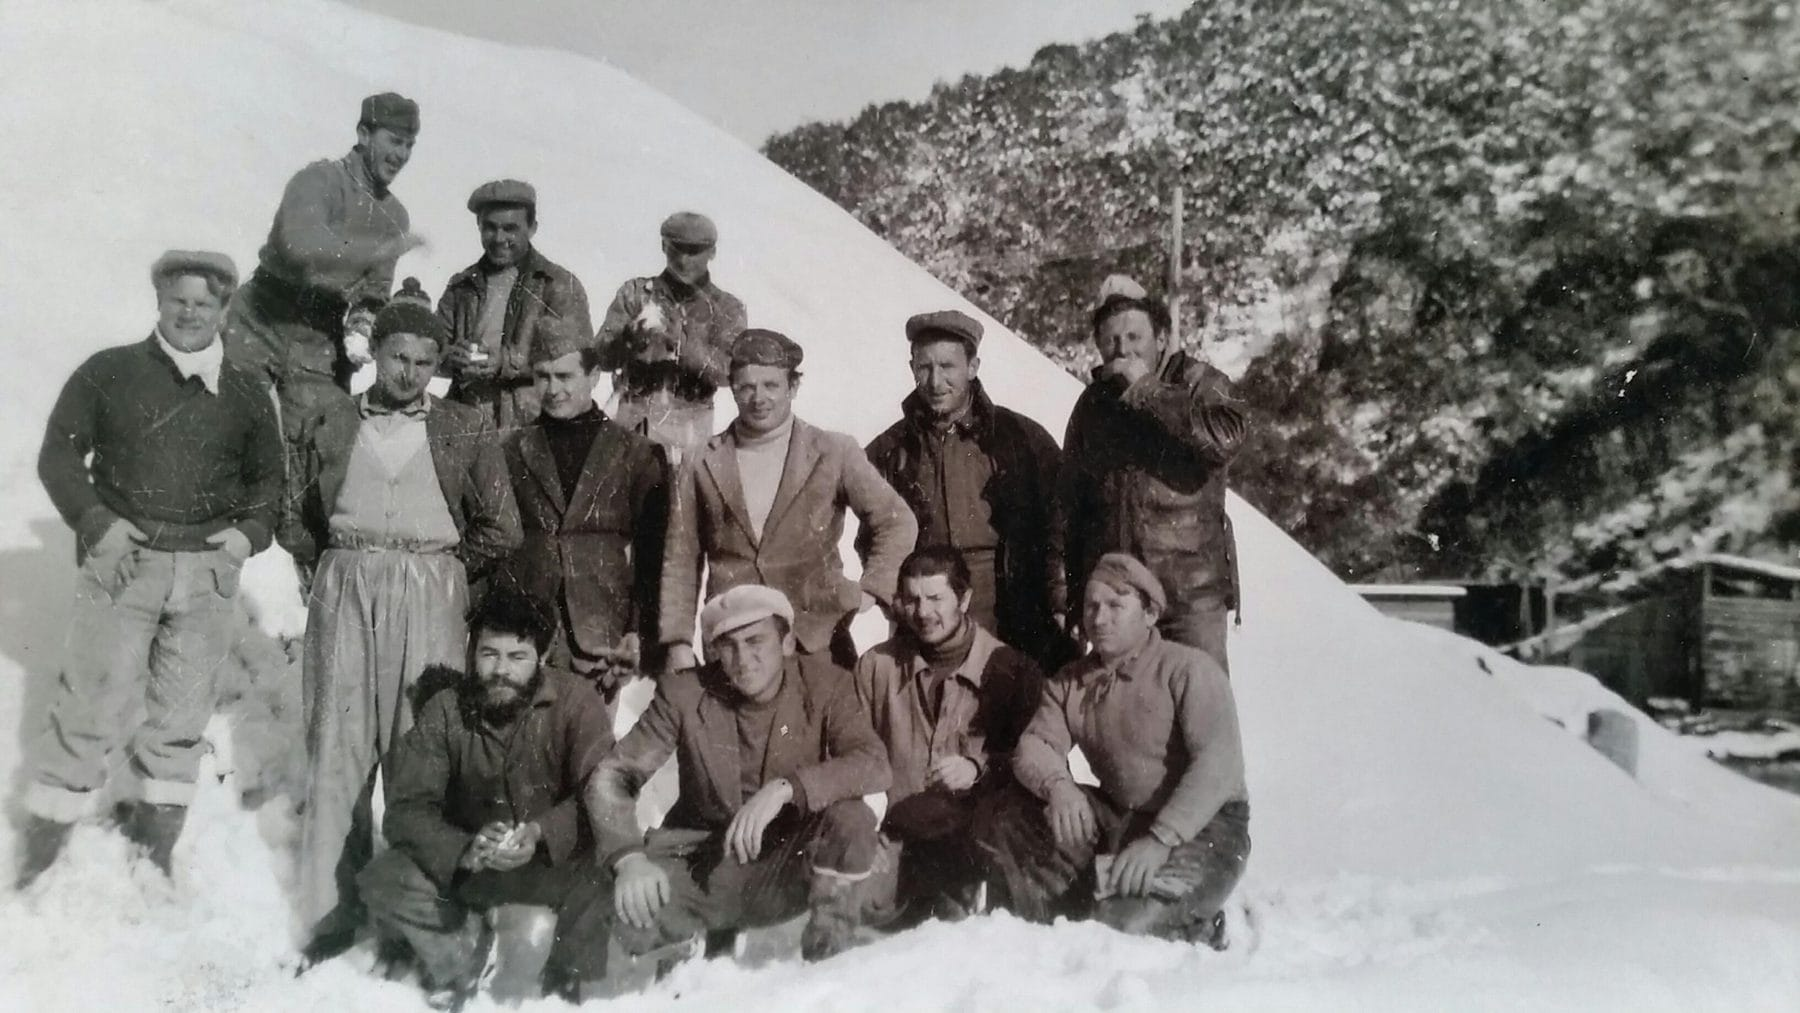 13 men in snow with mountain behind